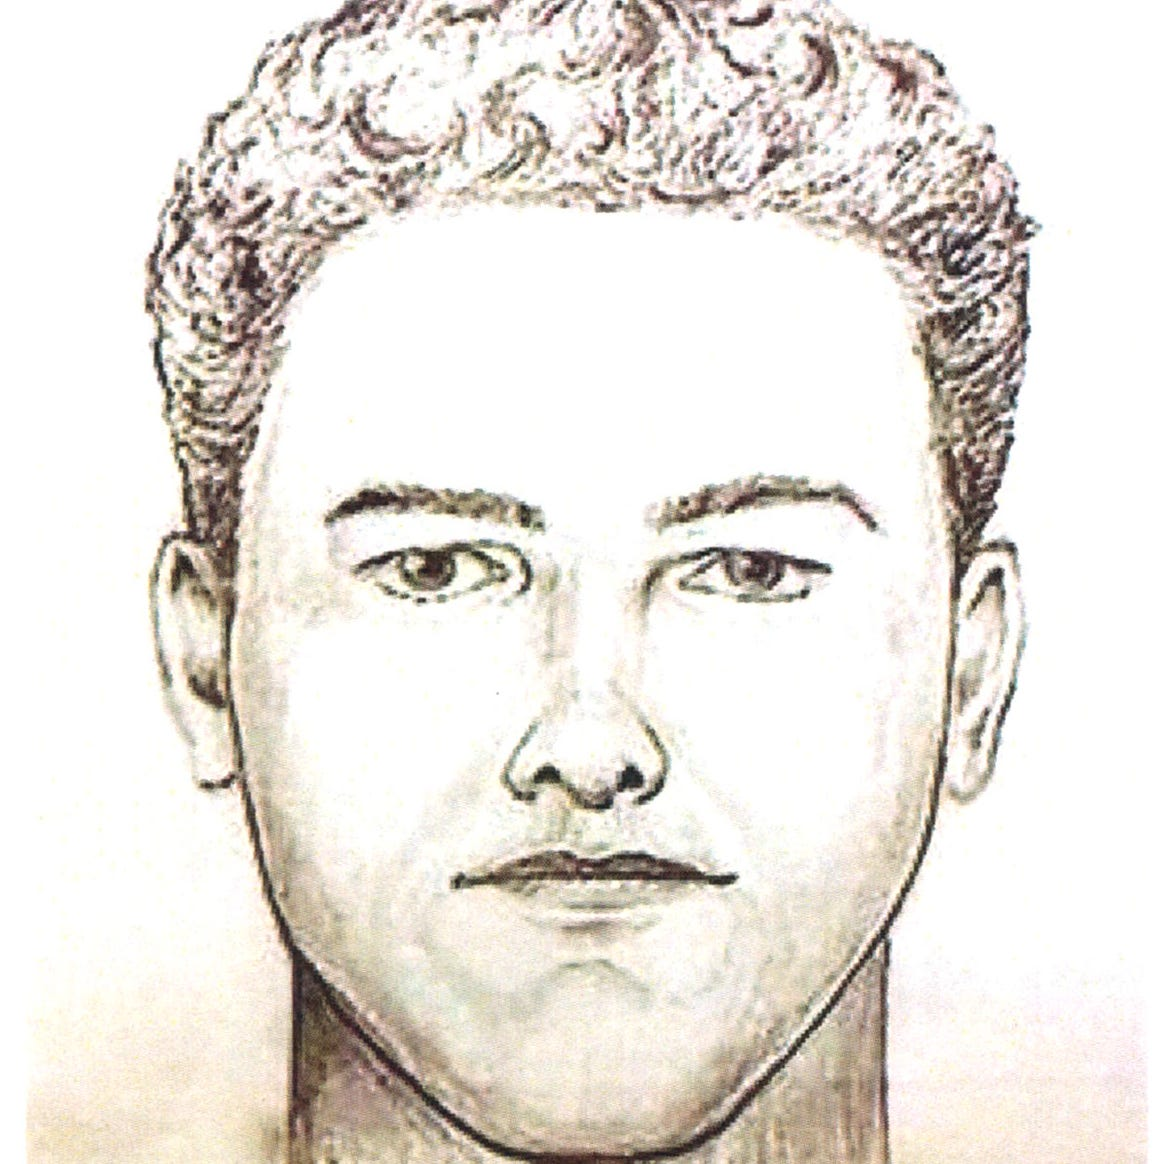 Delphi murders: New suspect sketch not same man as in old sketch, ISP clarifies